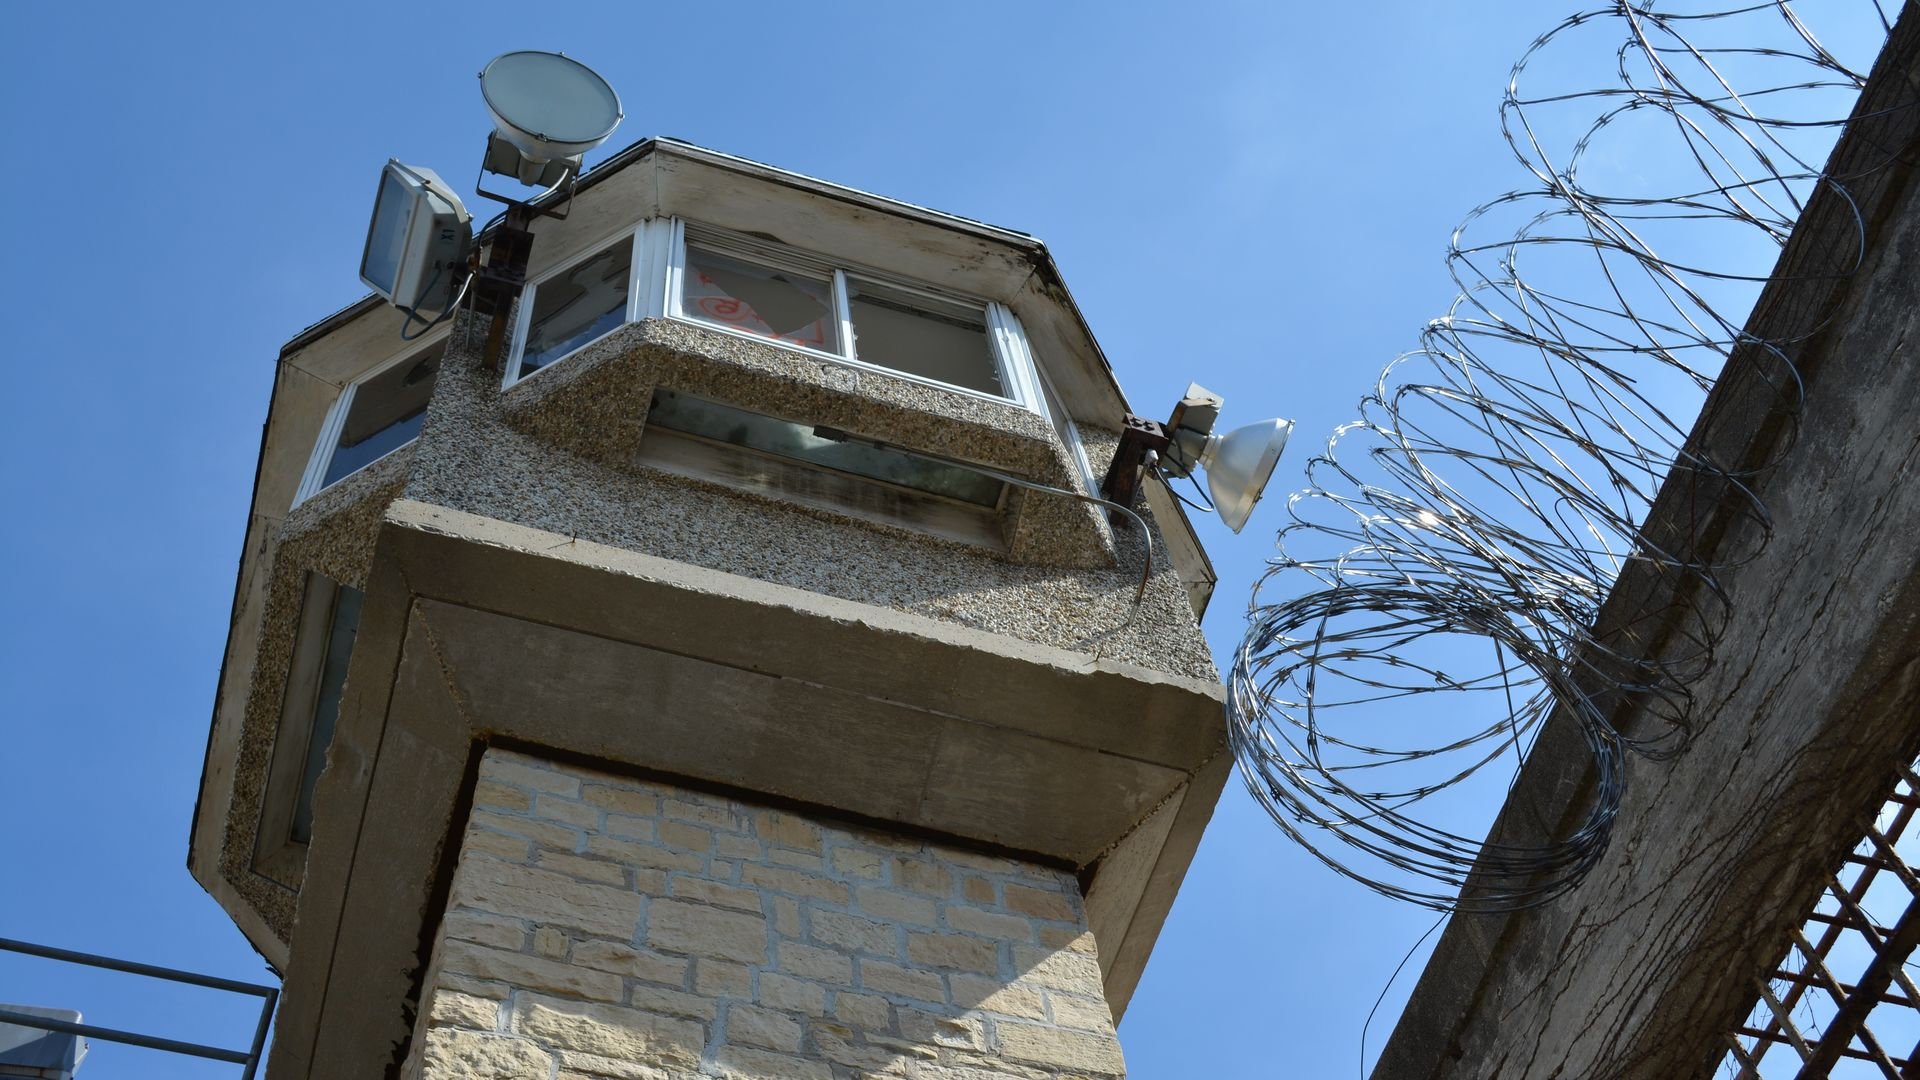 jail guard tower barbwire